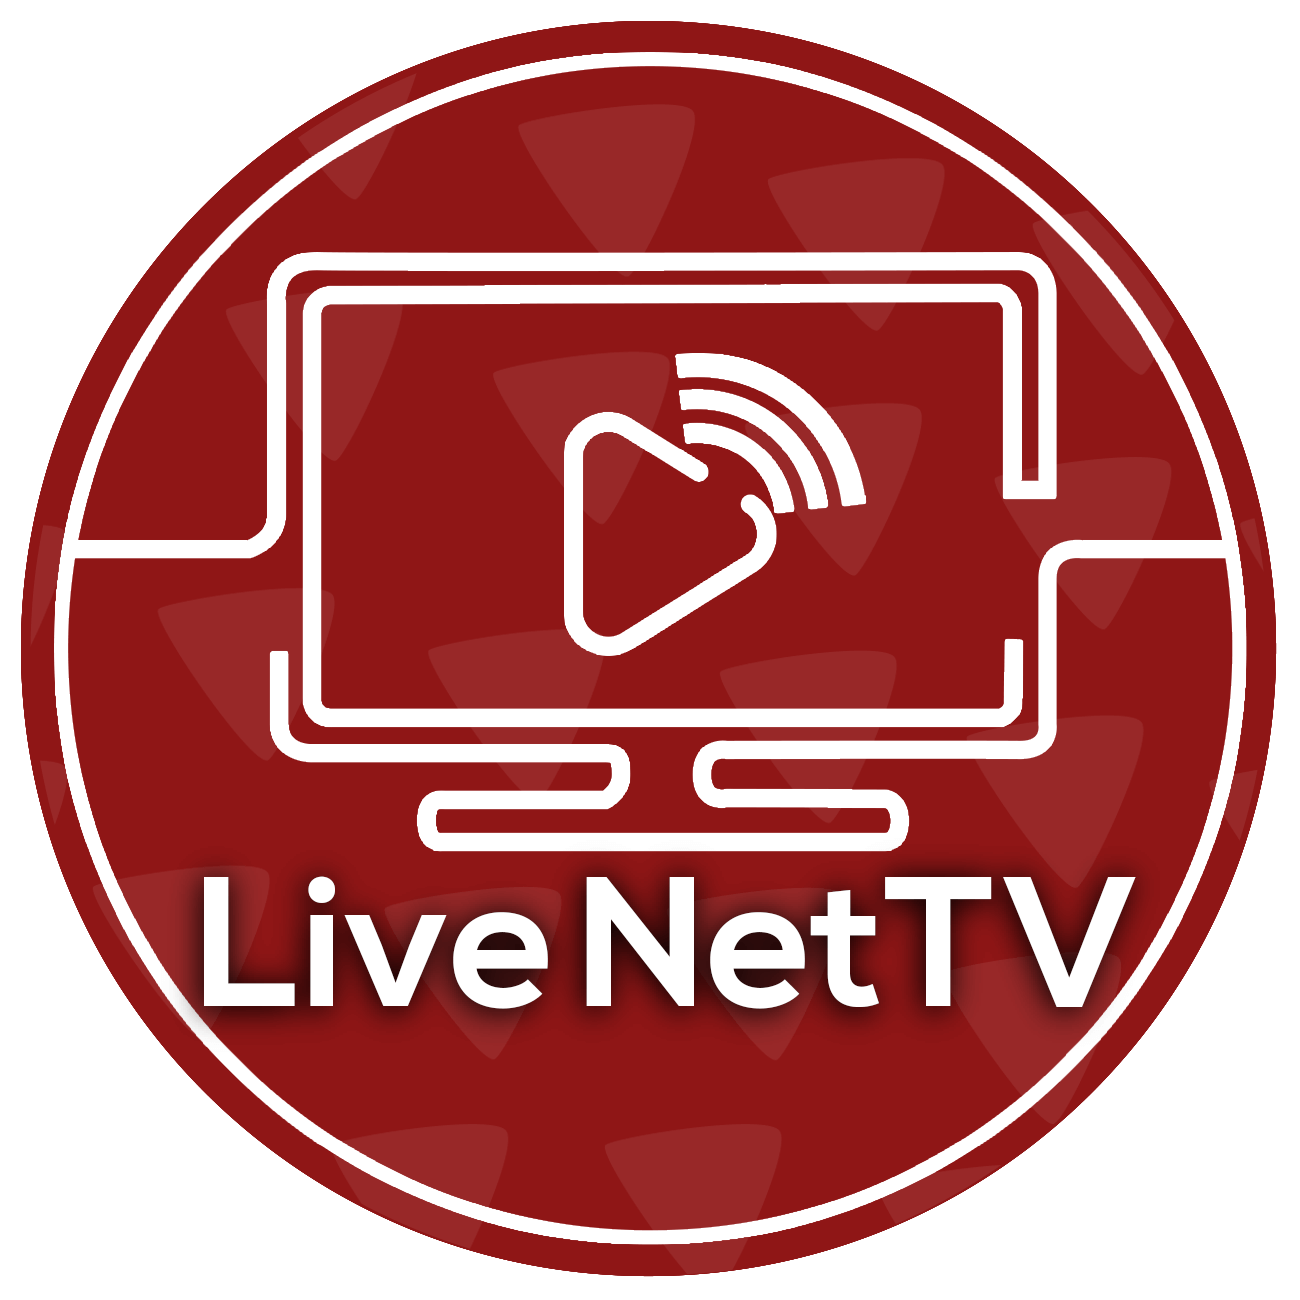 Install Live NetTV android app - tech2guides co uk